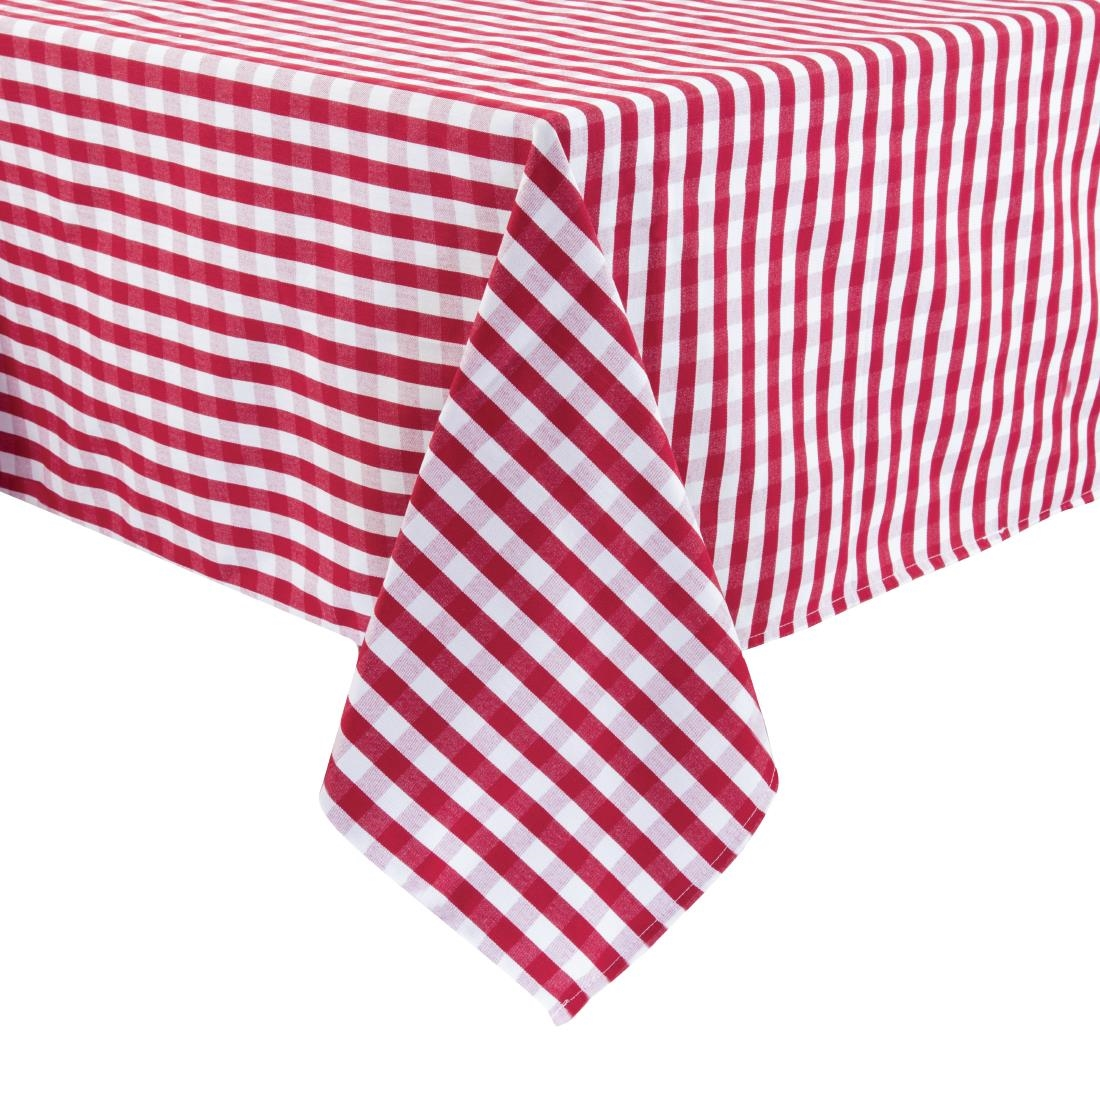 Image of Gingham Tablecloth Red 1320 x 1320mm